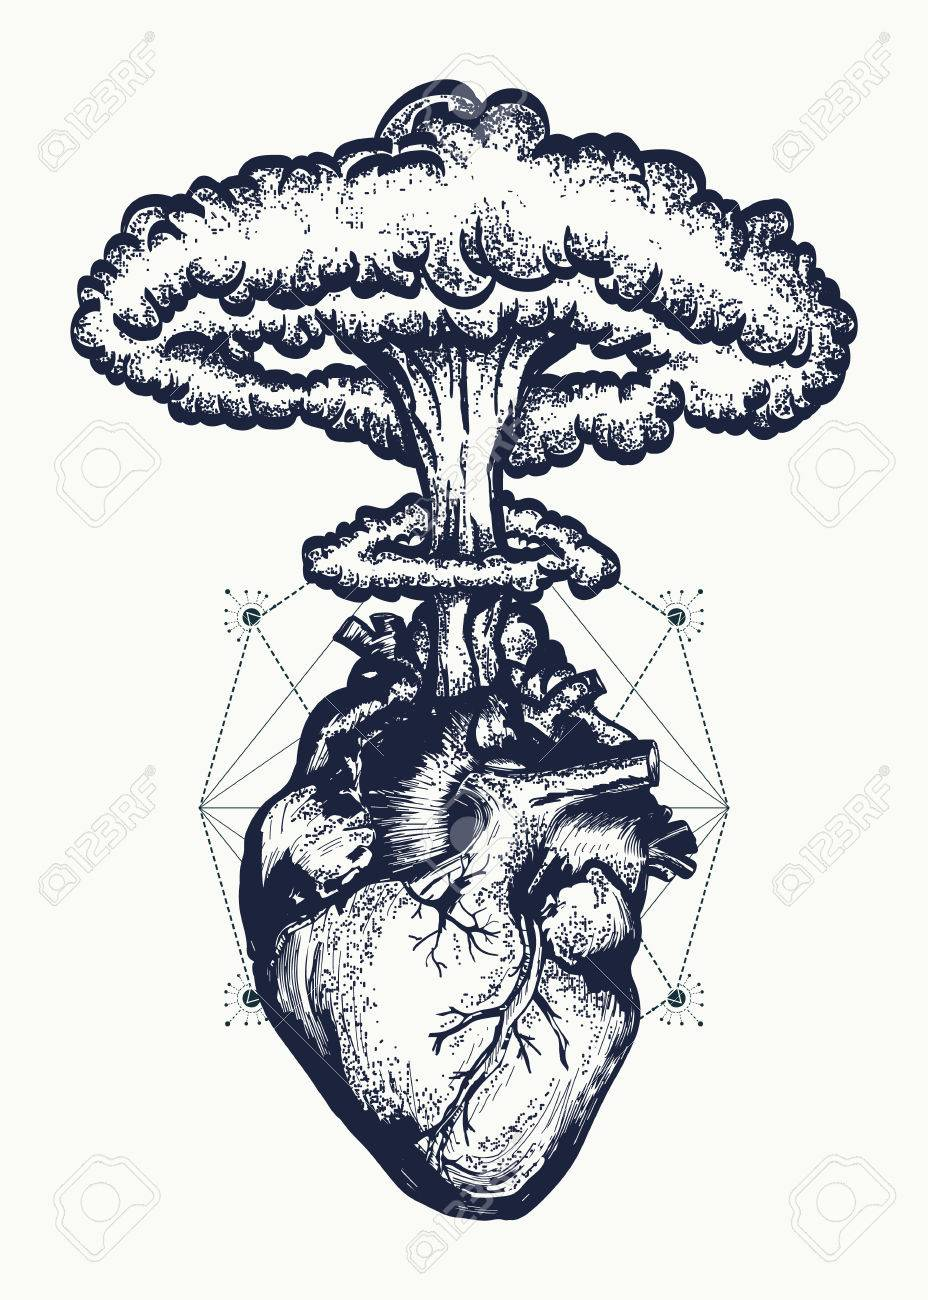 Heart and nuclear explosion tattoo art. Symbol of love, feelings, energy. Nuclear explosion of anatomical heart t-shirt design surreal graphic - 71509911